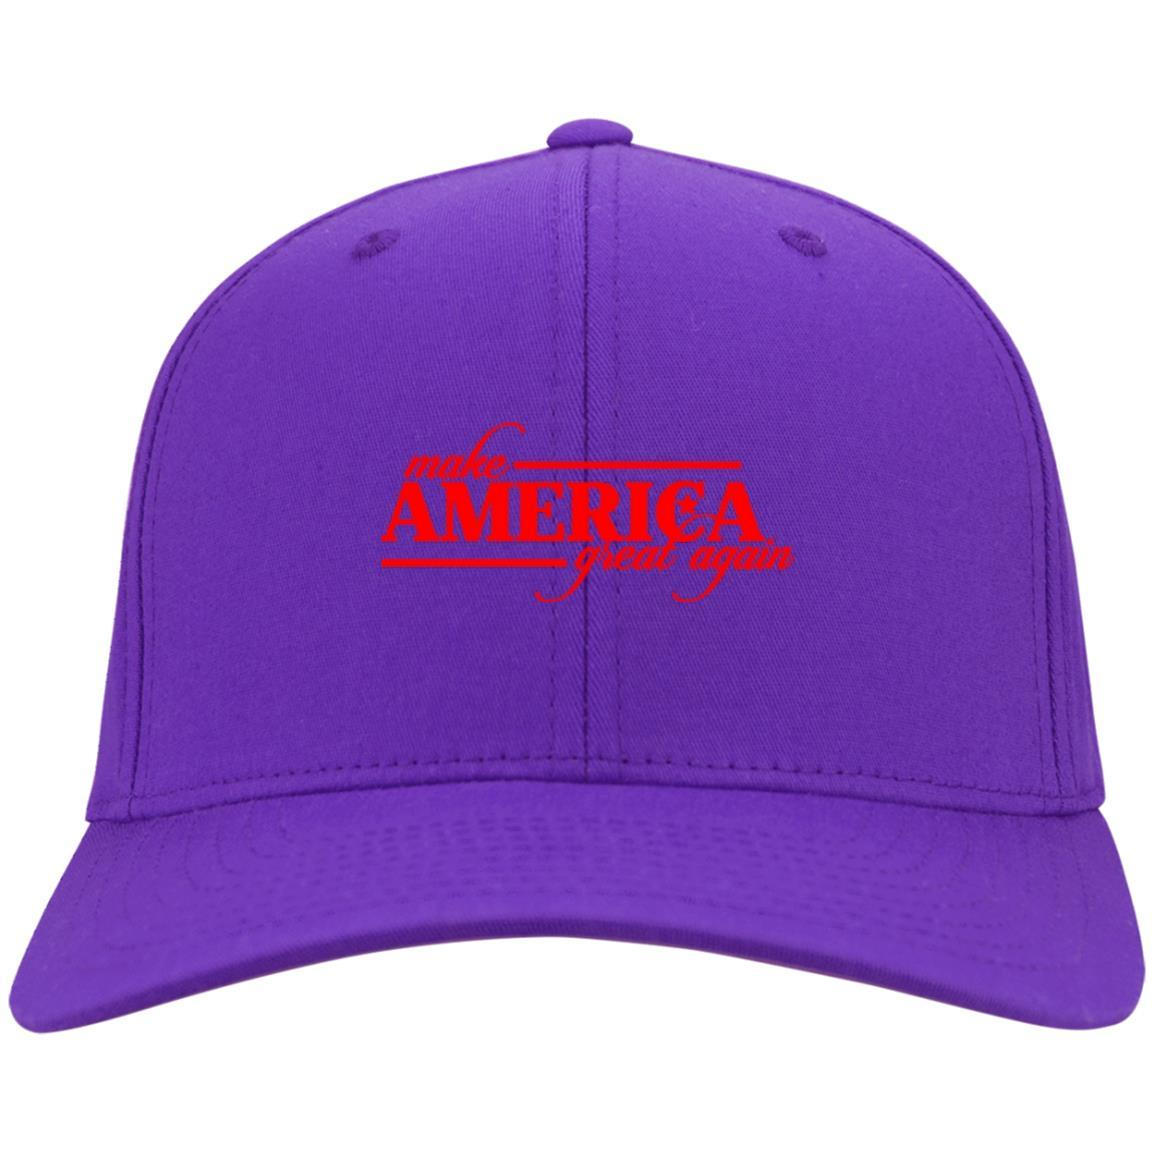 Make America Great Again - Port & Co. Twill Cap Purple